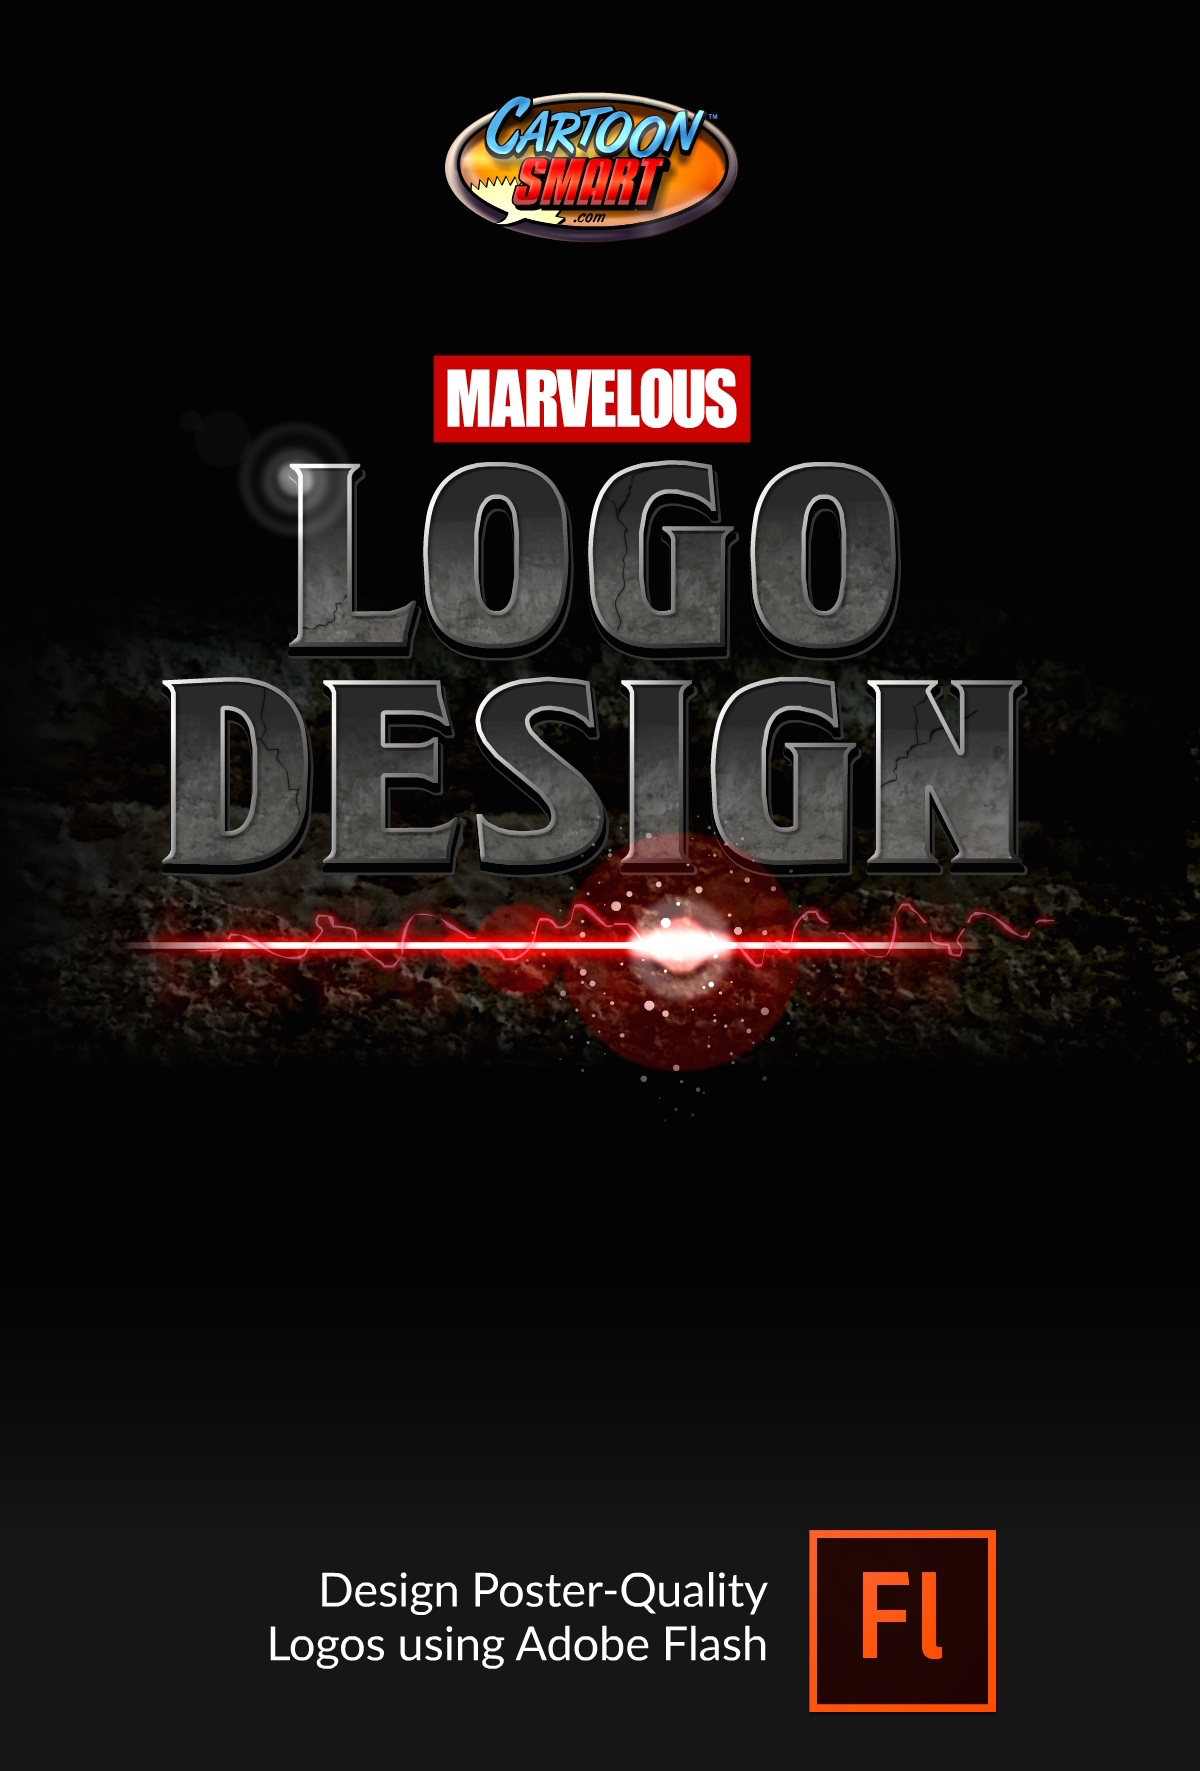 Marvelous Logo Design with Adobe Flash - Video Tutorials